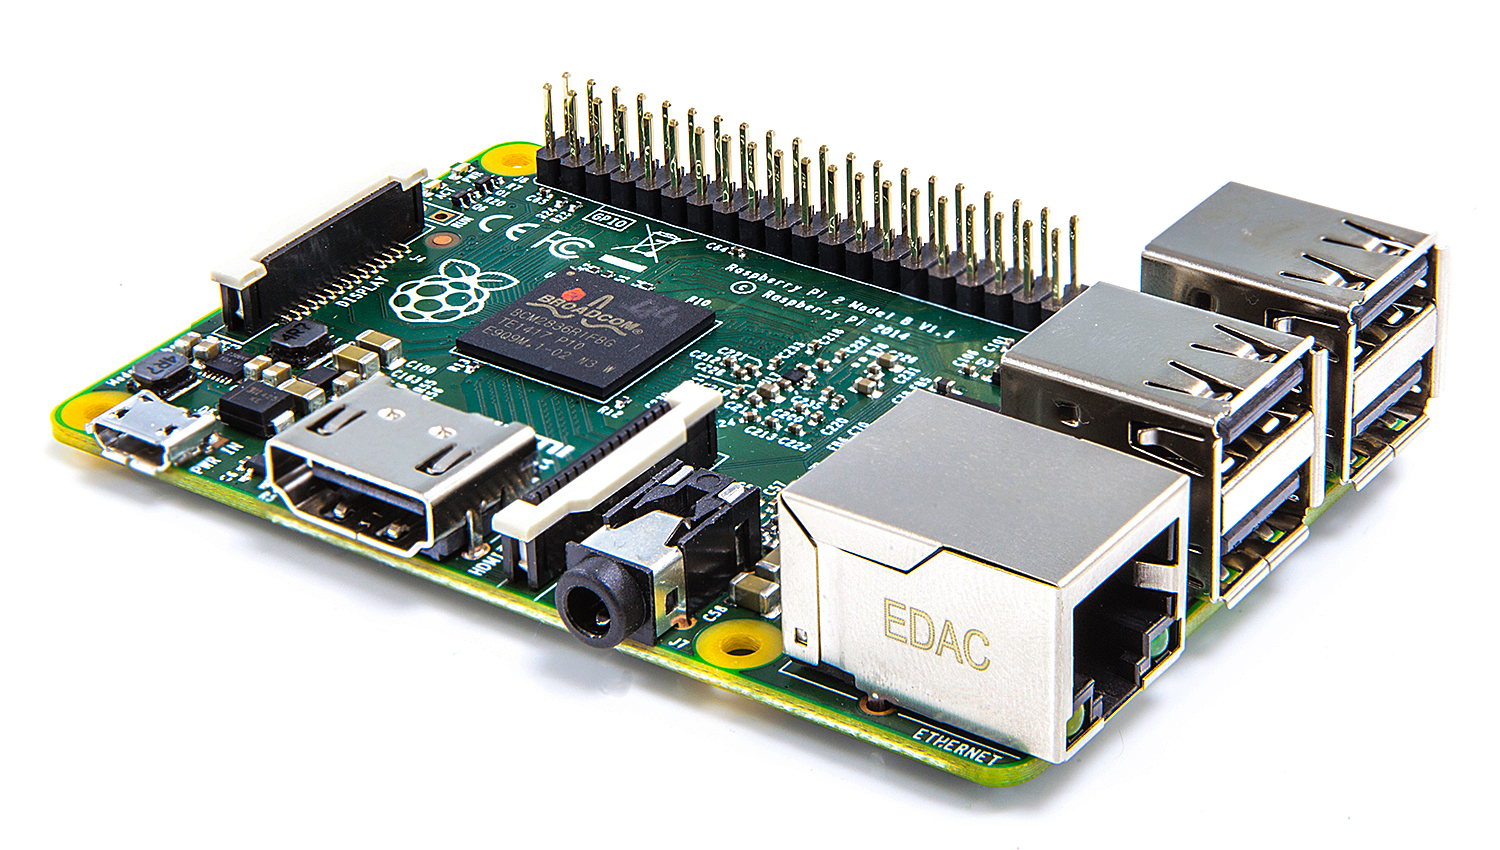 The new Raspberry Pi 2 is capable of running Windows 10! Follow this tutorial to learn how to install it!